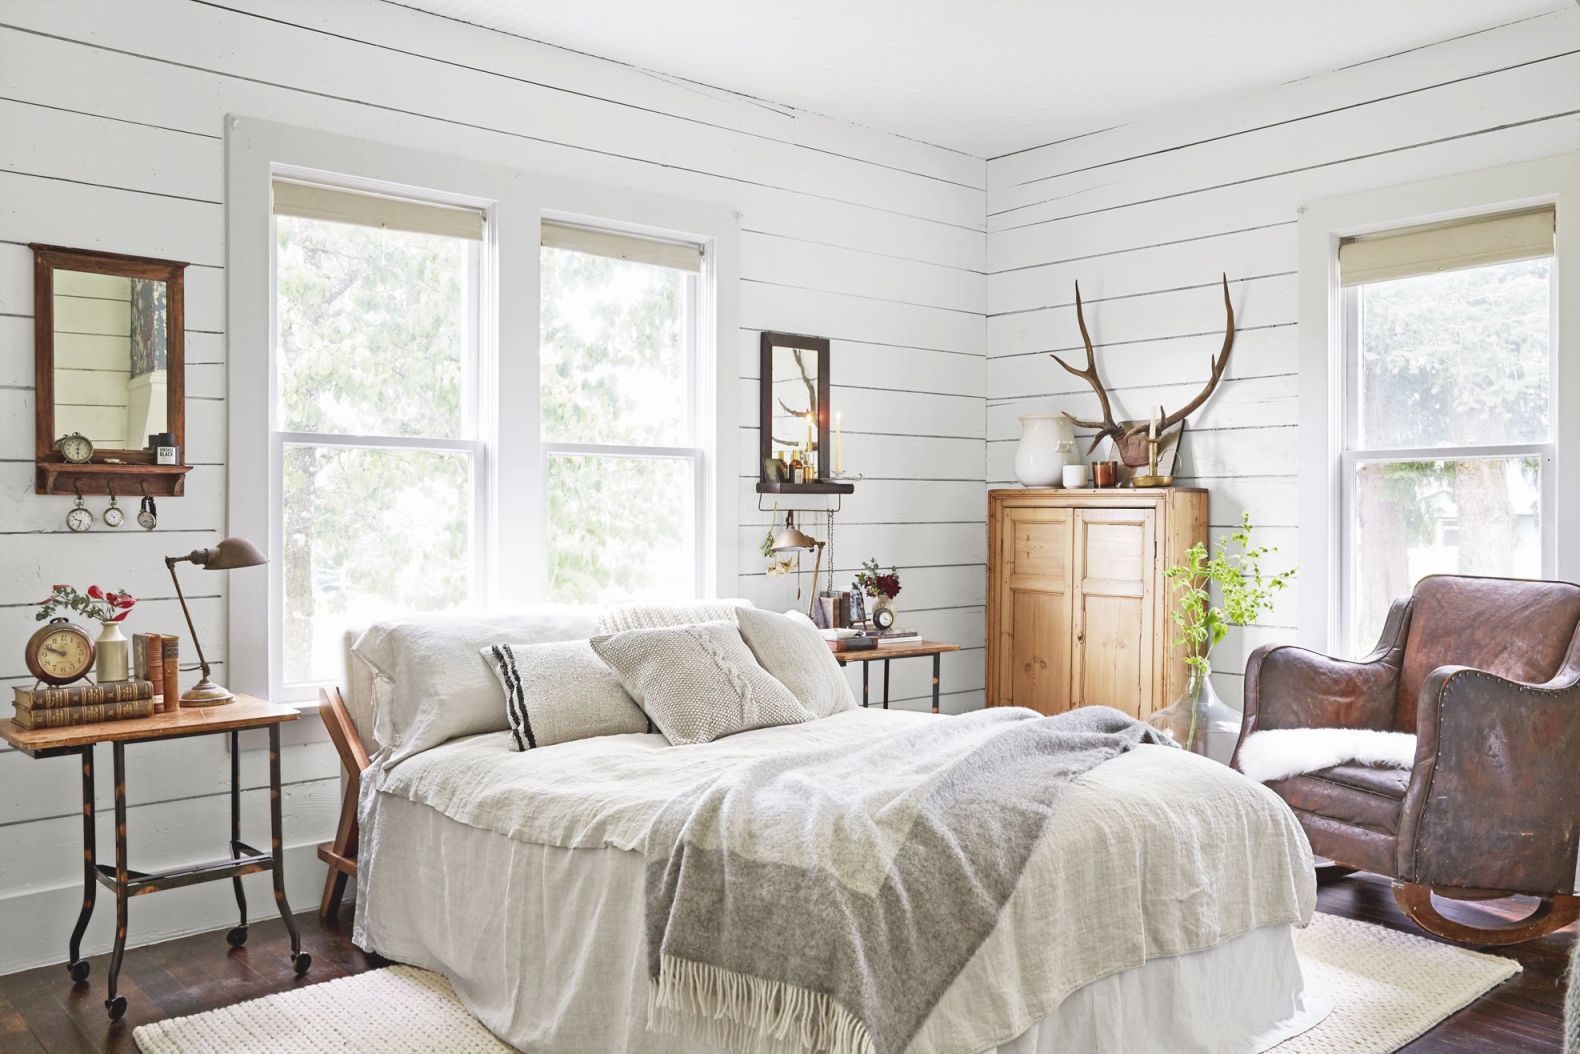 100+ Bedroom Decorating Ideas In 2020 – Designs For in Cabin Bedroom Decorating Ideas